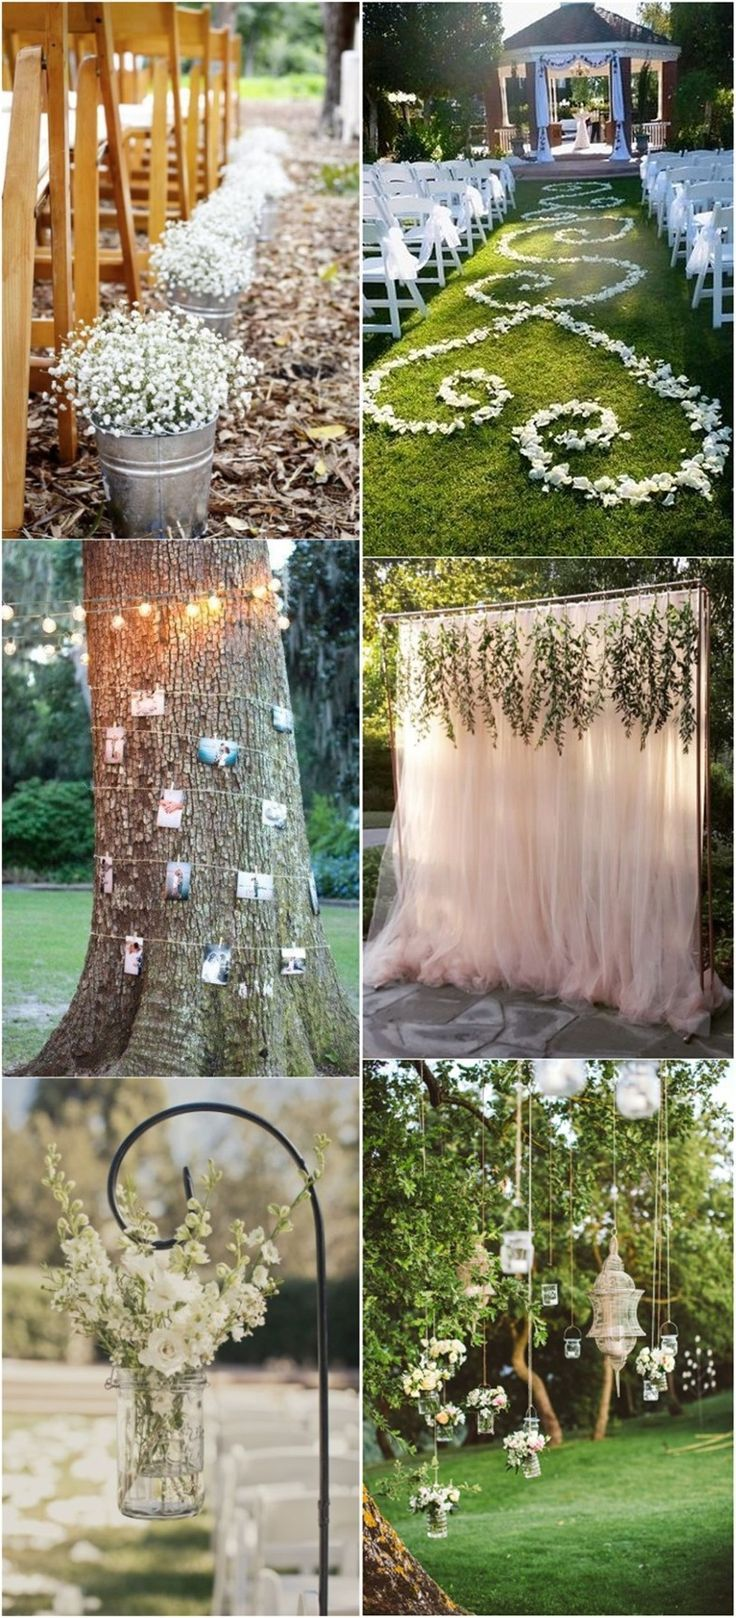 Wedding decoration ideas simple   Genius Outdoor Wedding Ideas  Wedding Weddings and Future